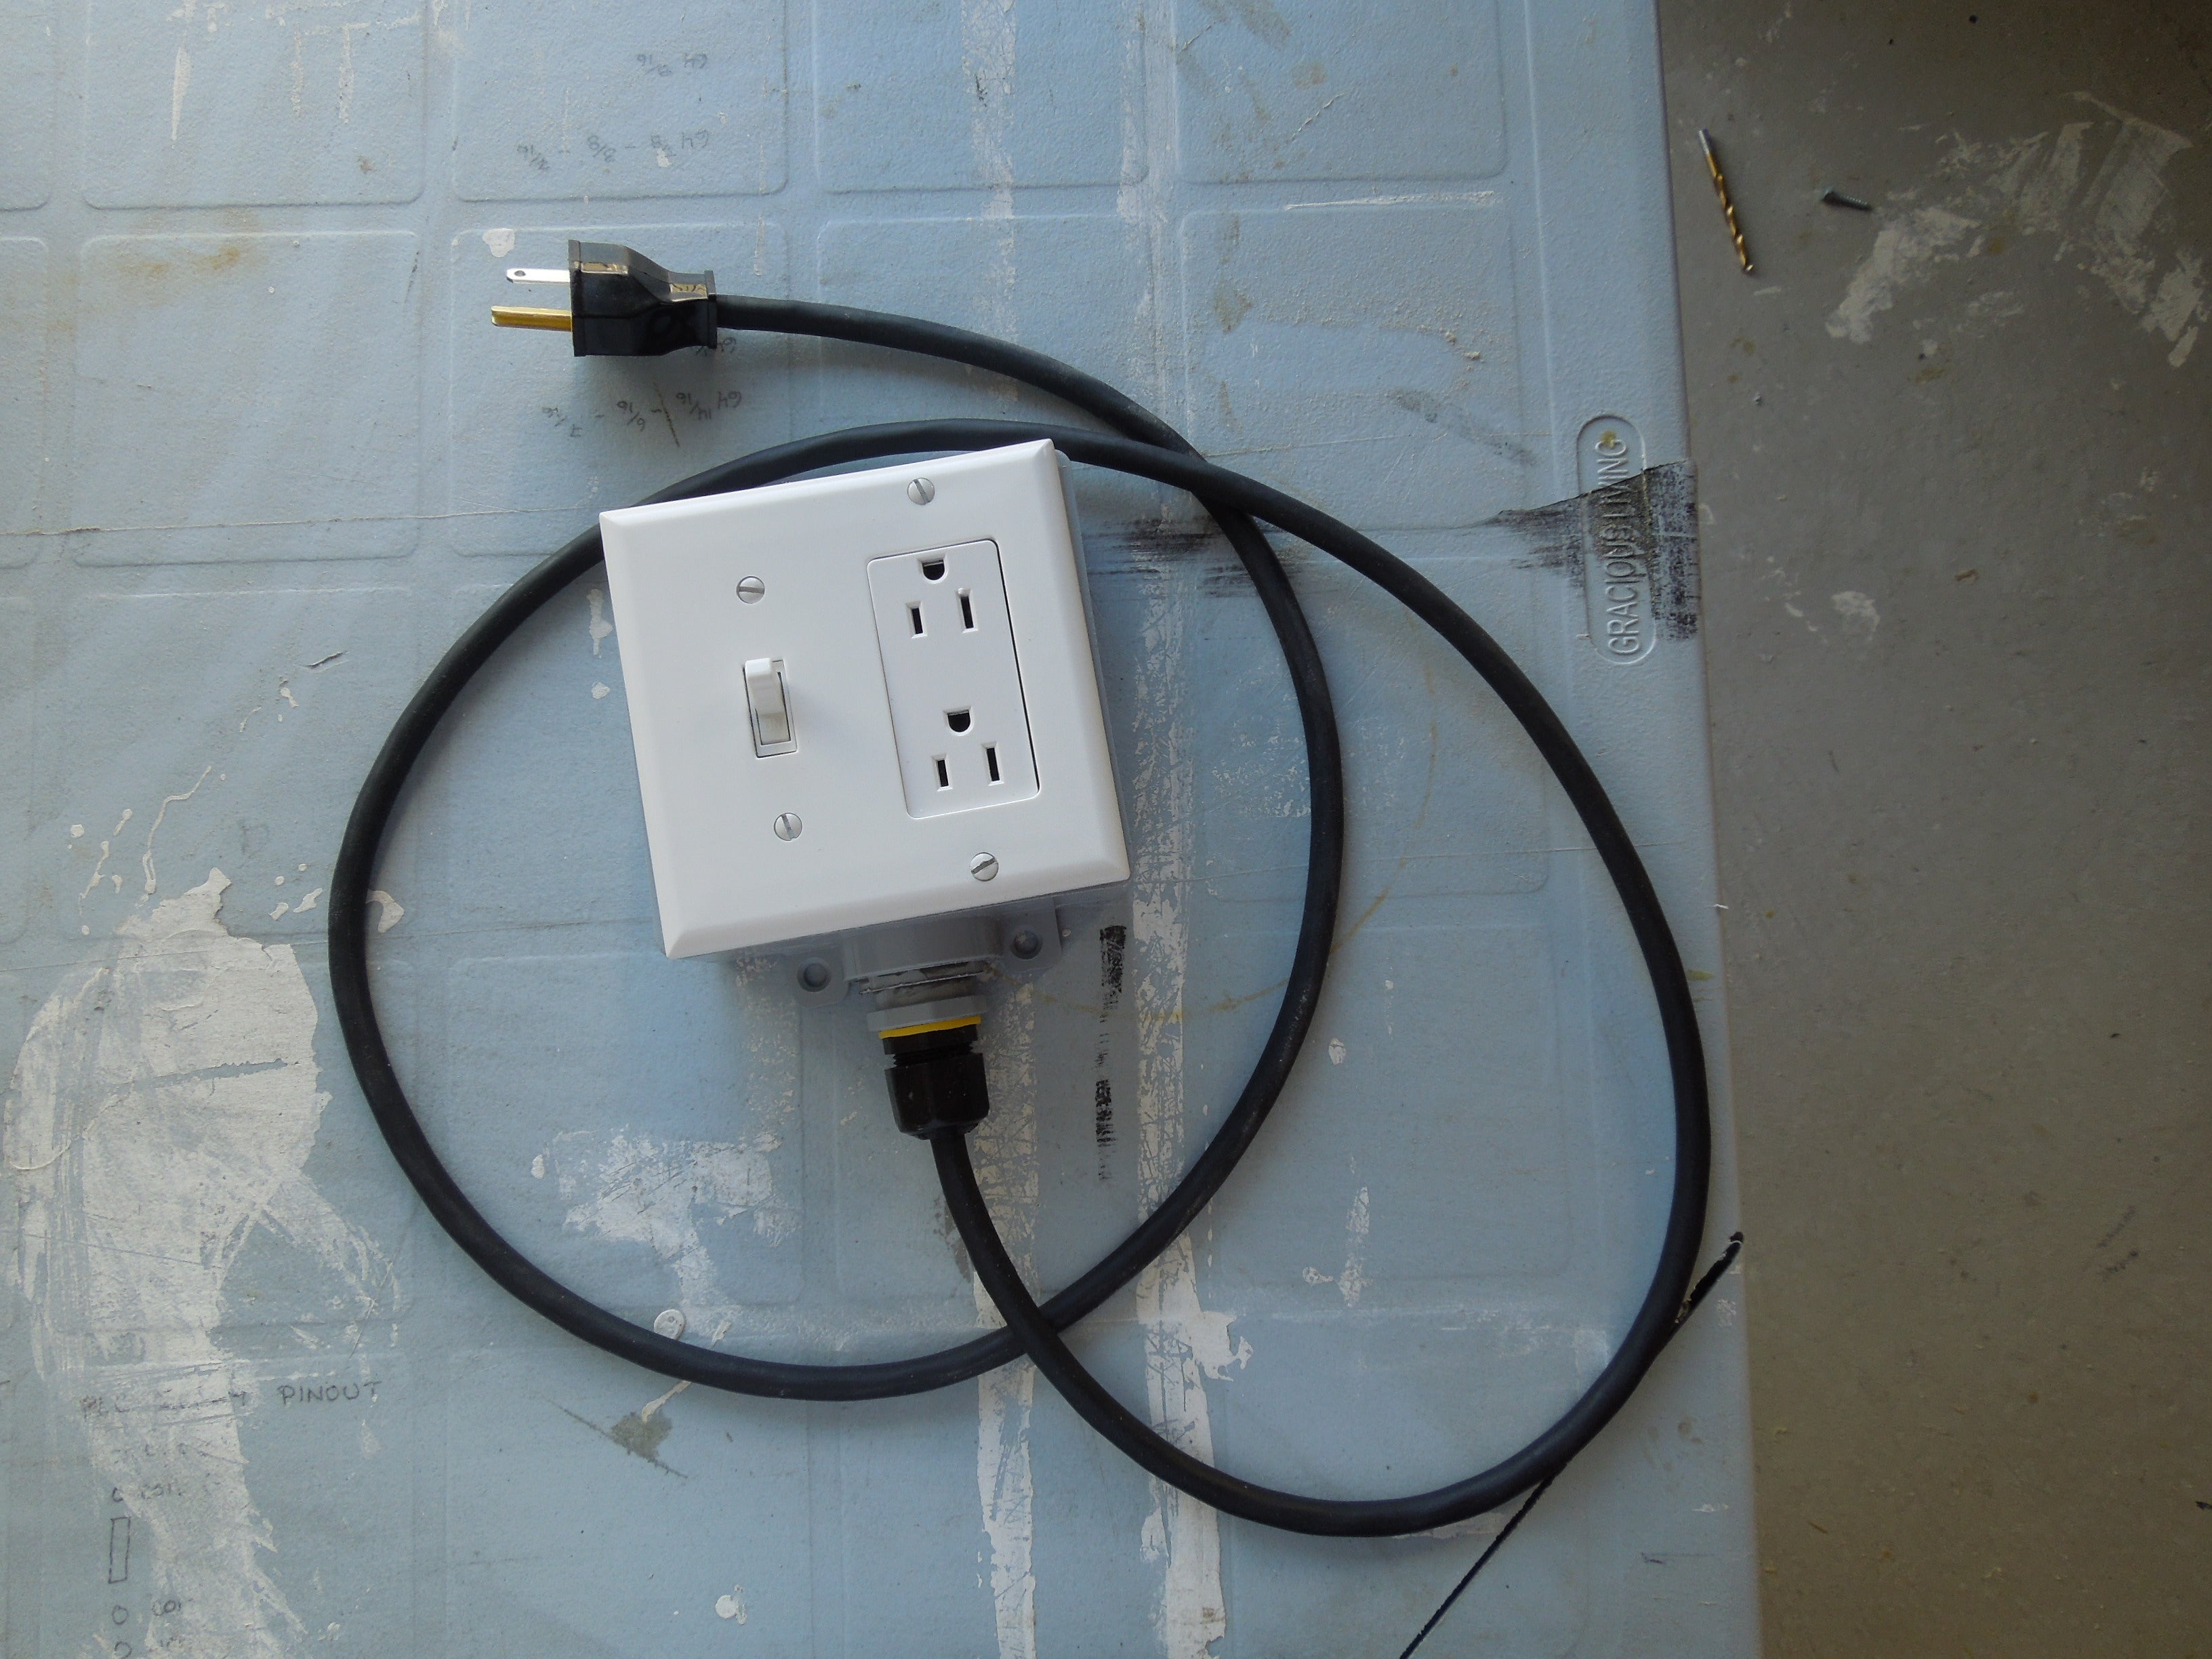 Diy Extension Cord With Built In Switch Safe Quick And Simple 5 Steps Instructables